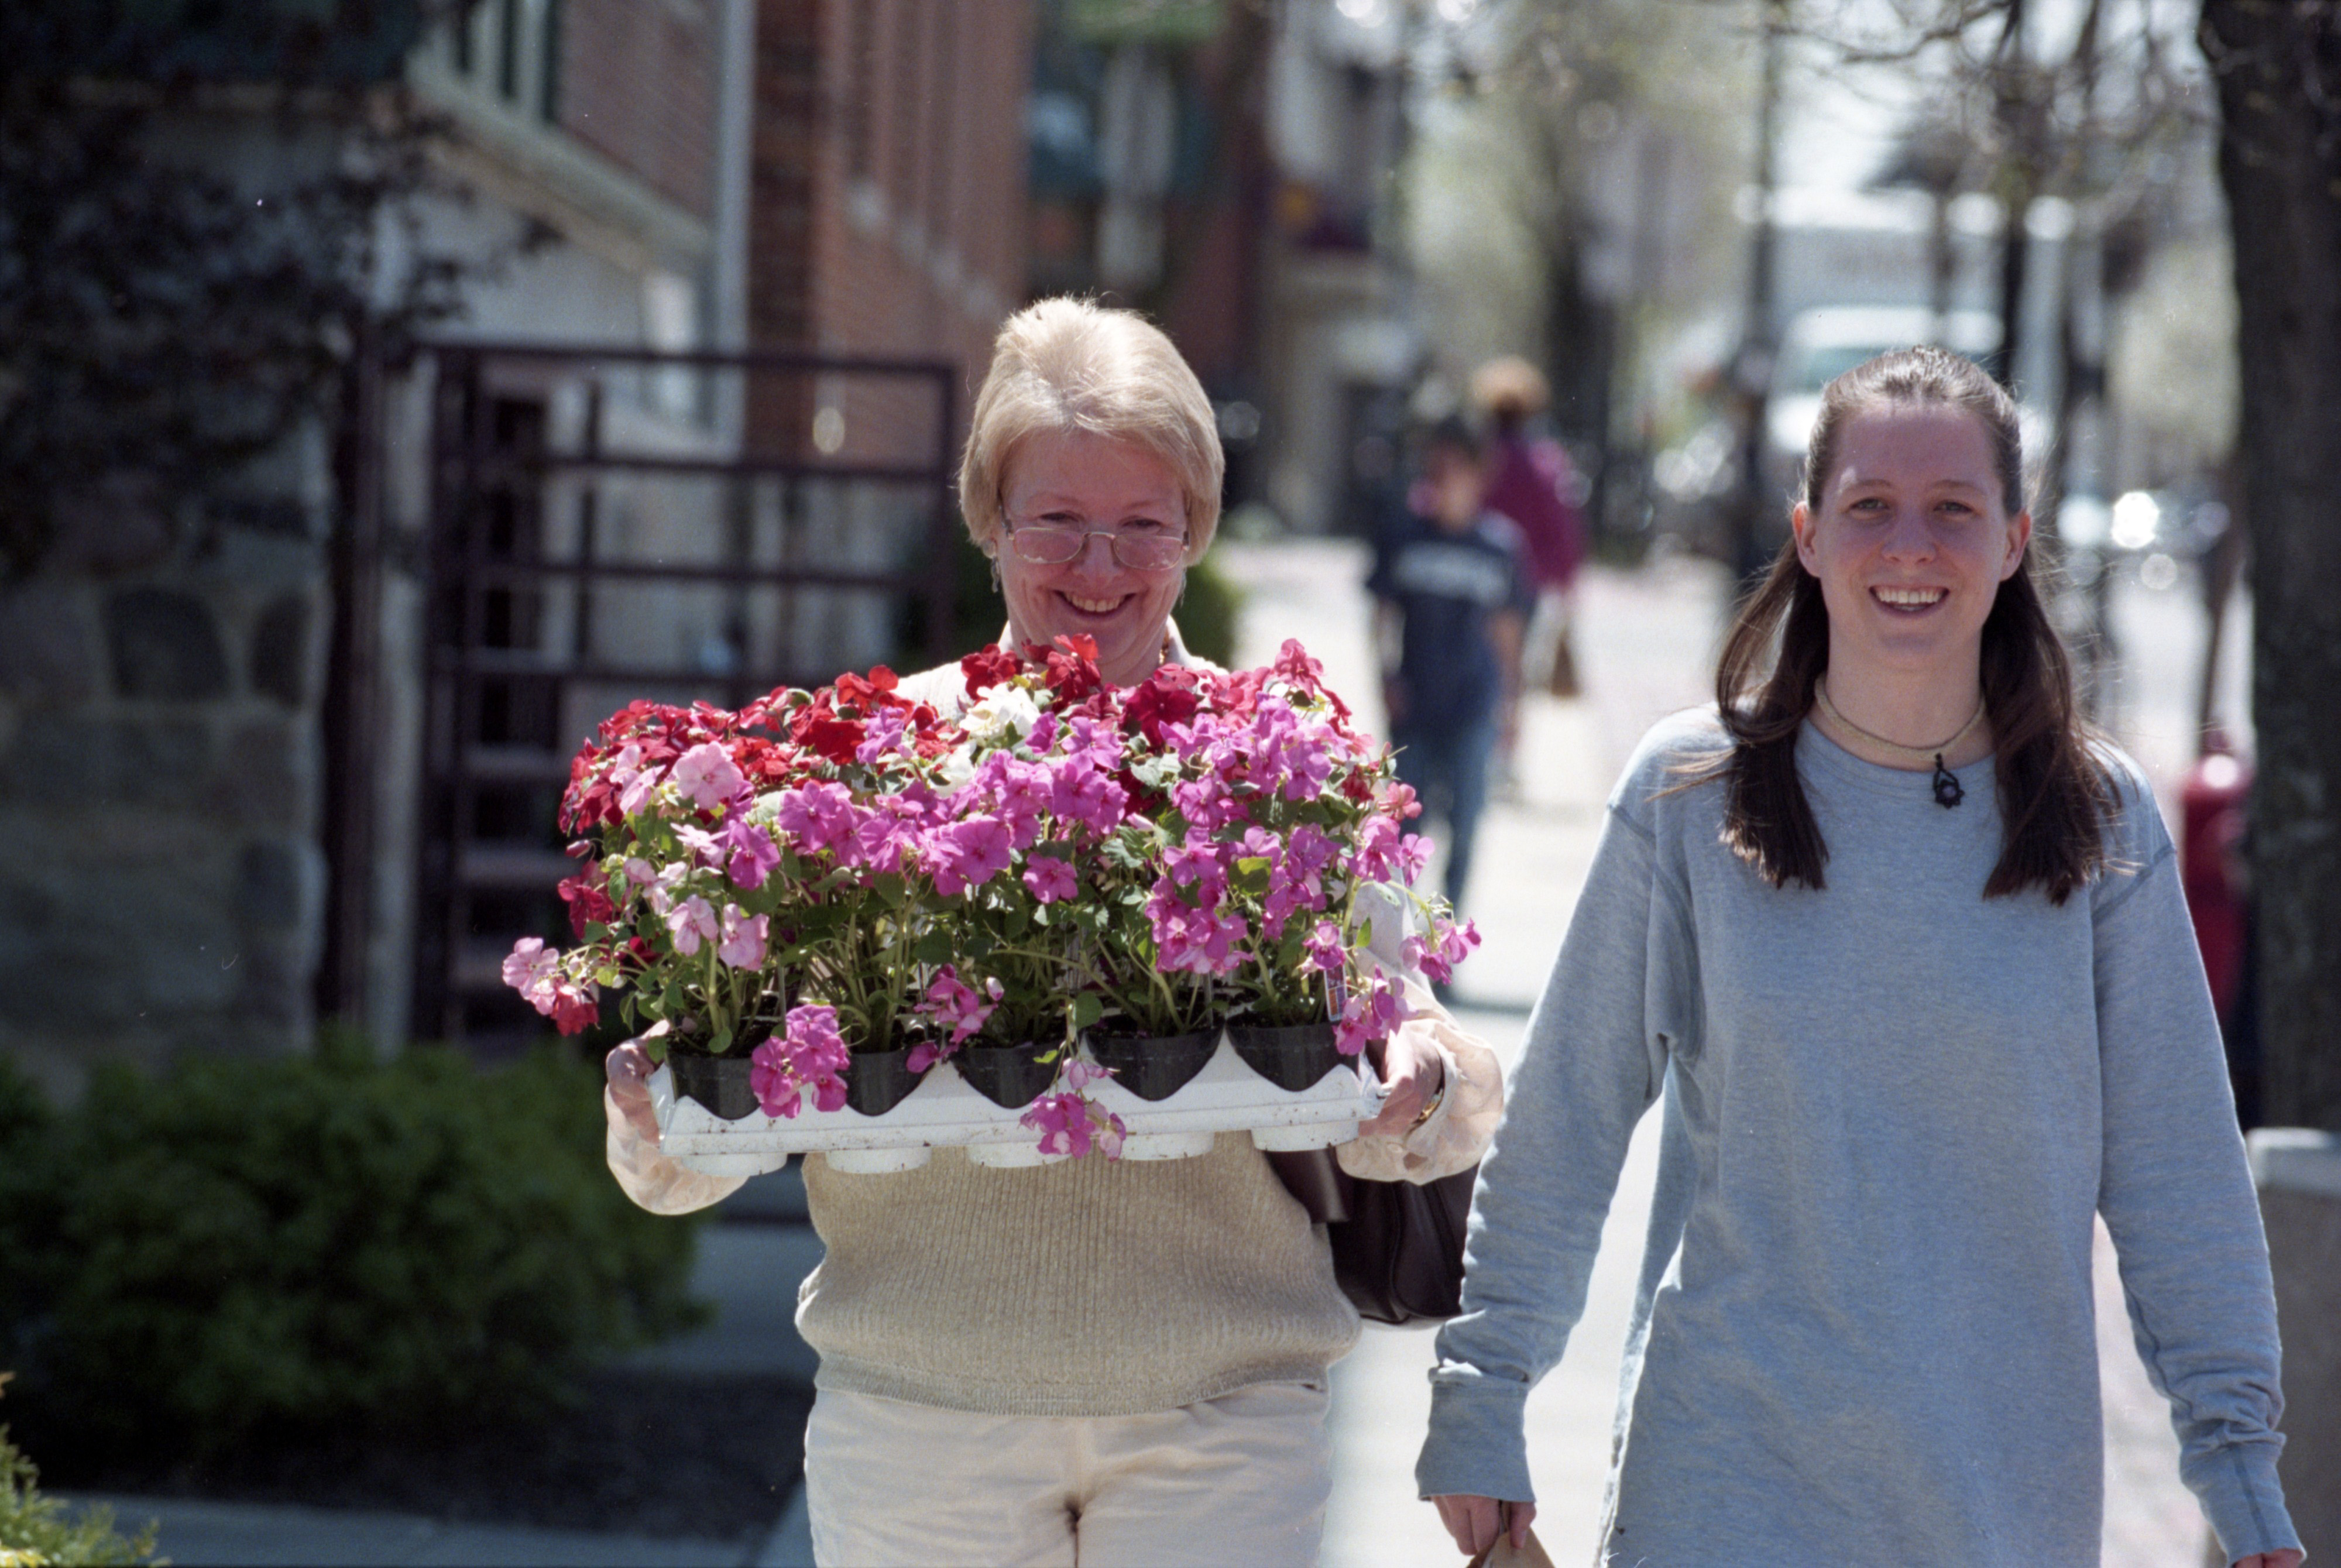 Customers Happy With Flowers Purchased At The Farmer's Market, May 1997 image